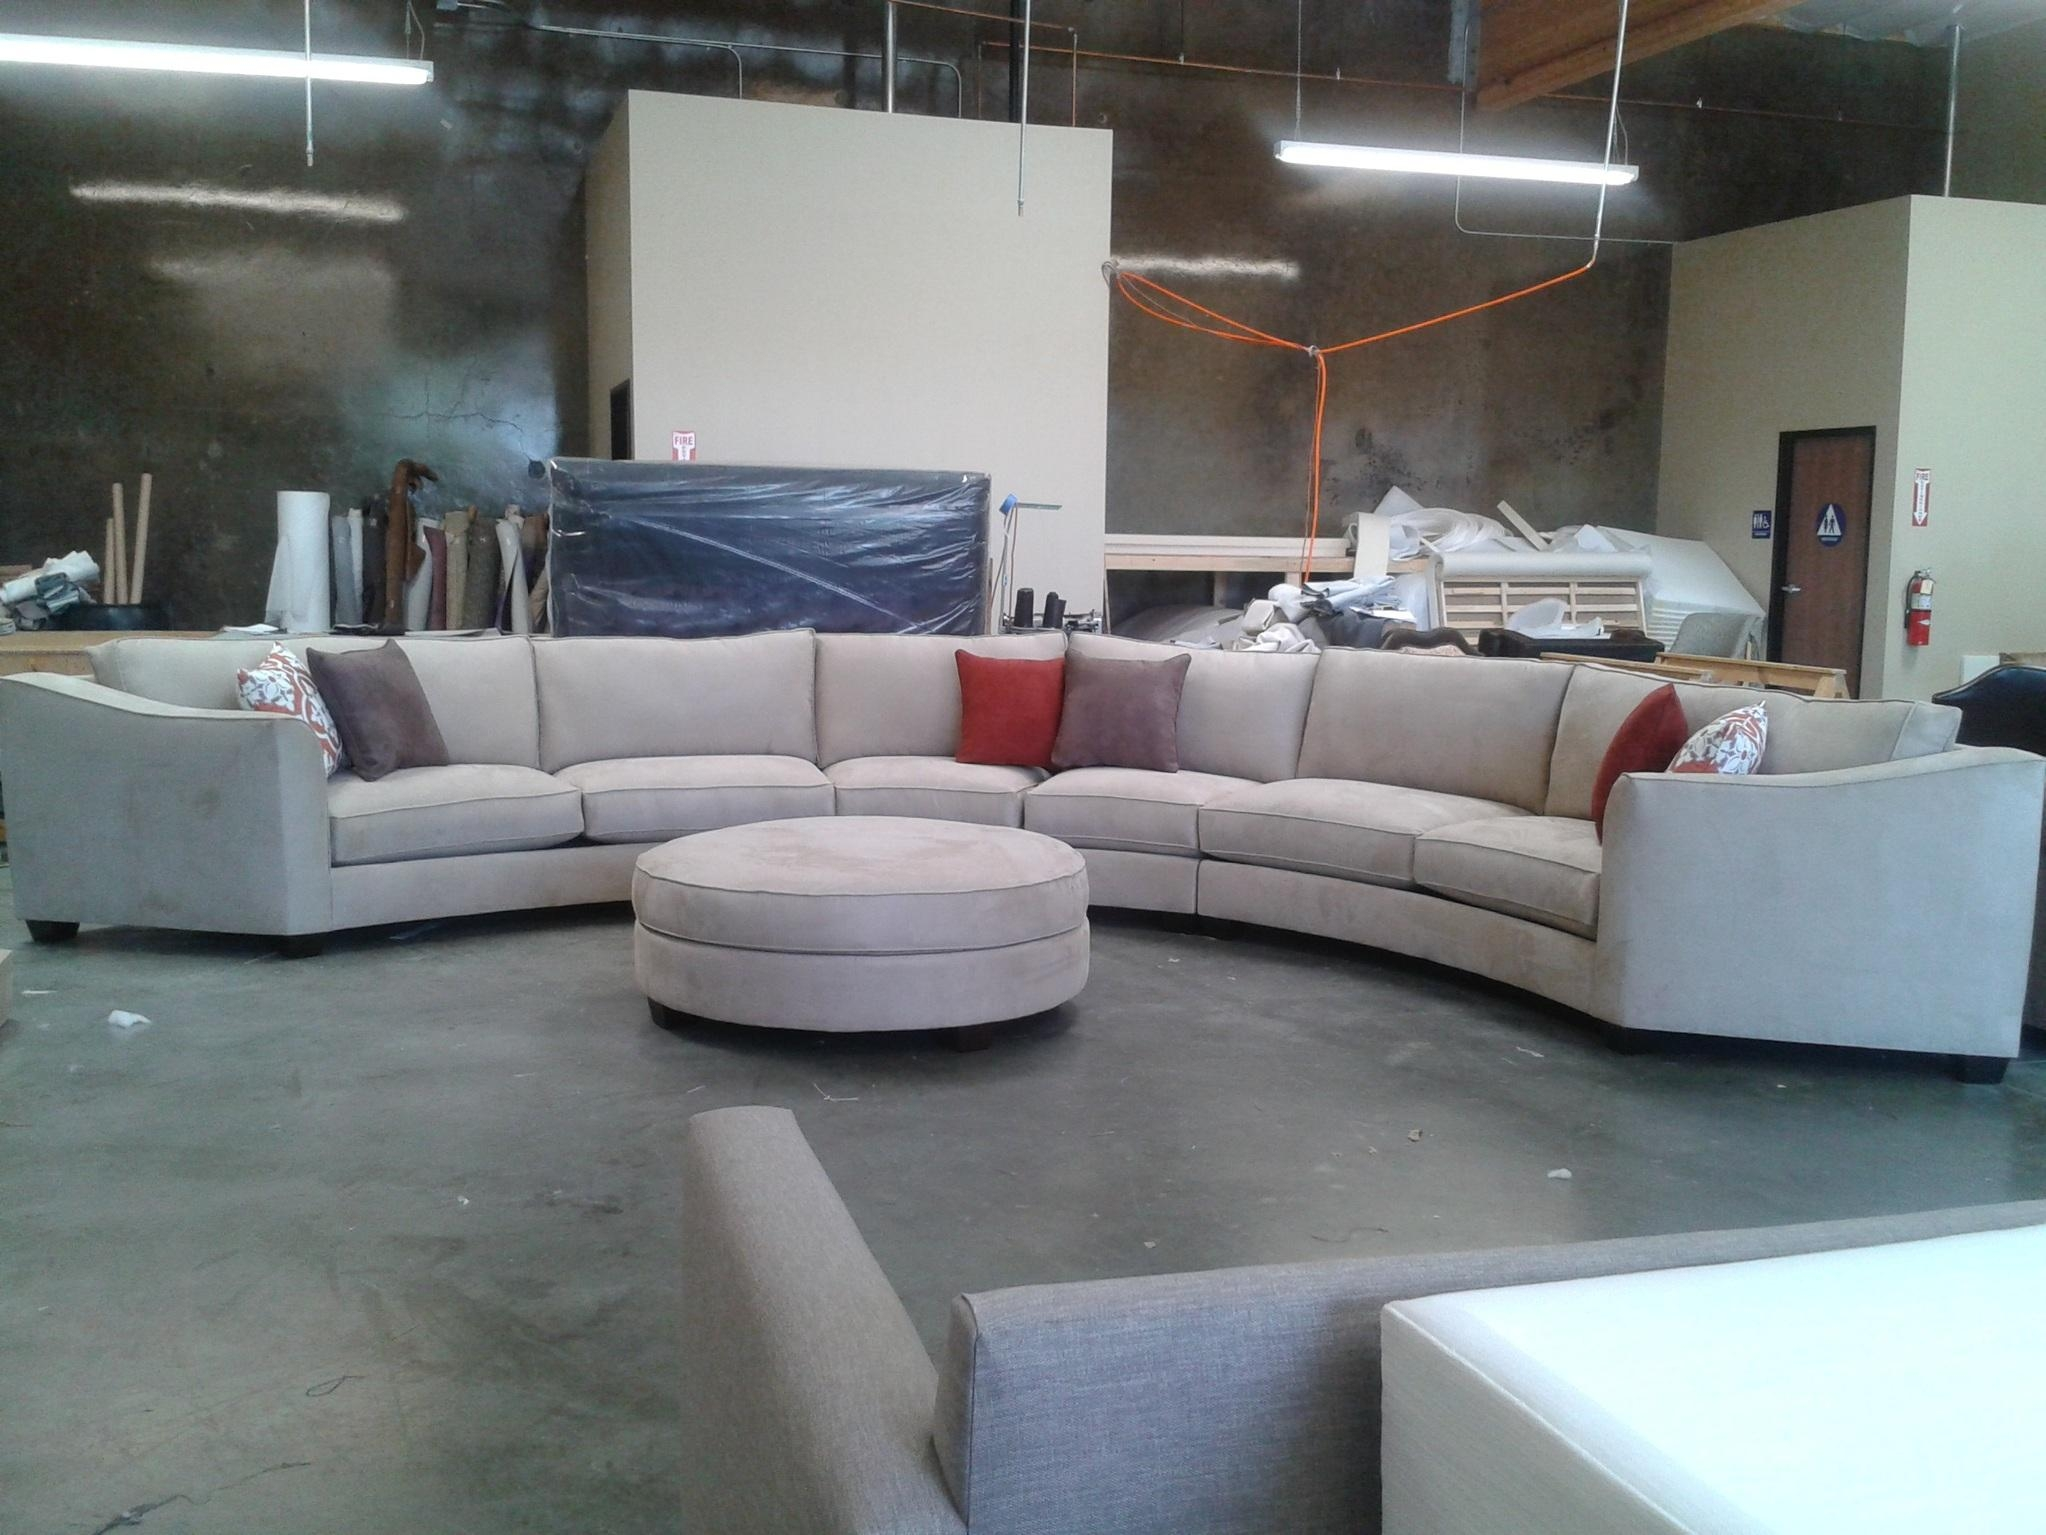 Sofa Round Sectional Bed | Tamingthesat Inside Round Sectional Sofa (View 5 of 20)